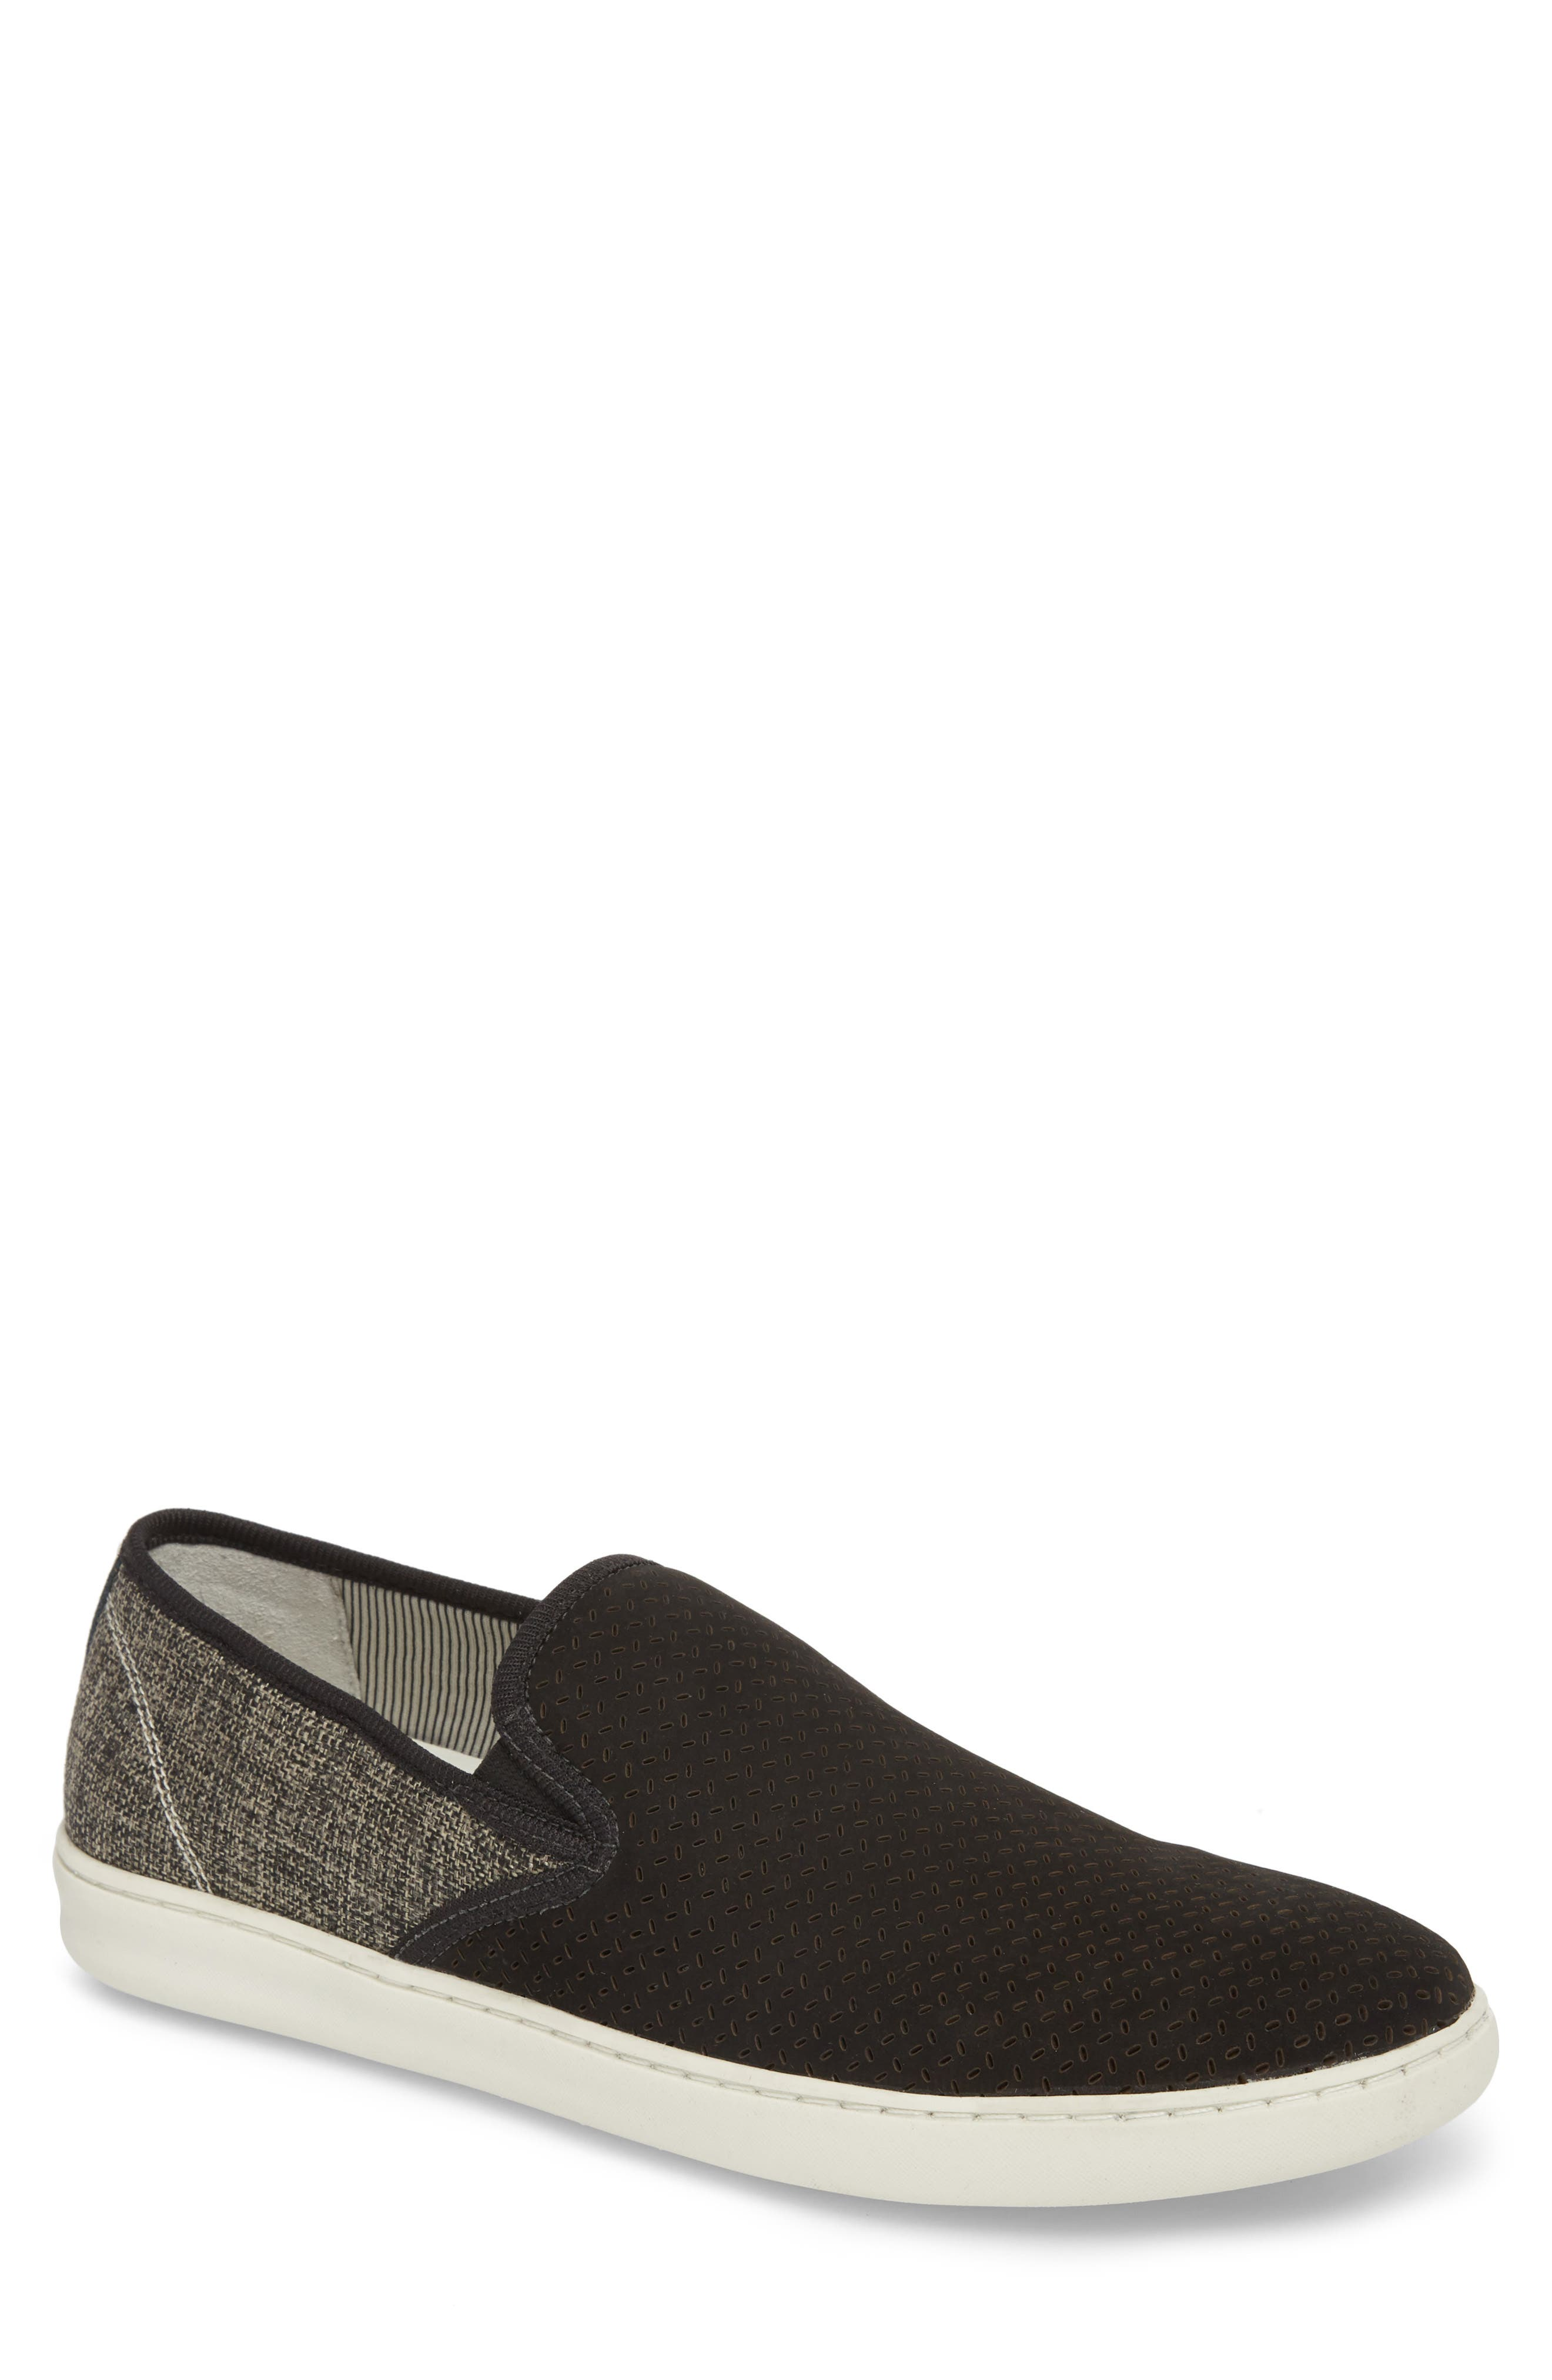 Malibu Perforated Loafer,                             Main thumbnail 1, color,                             BLACK LEATHER / GREY CANVAS